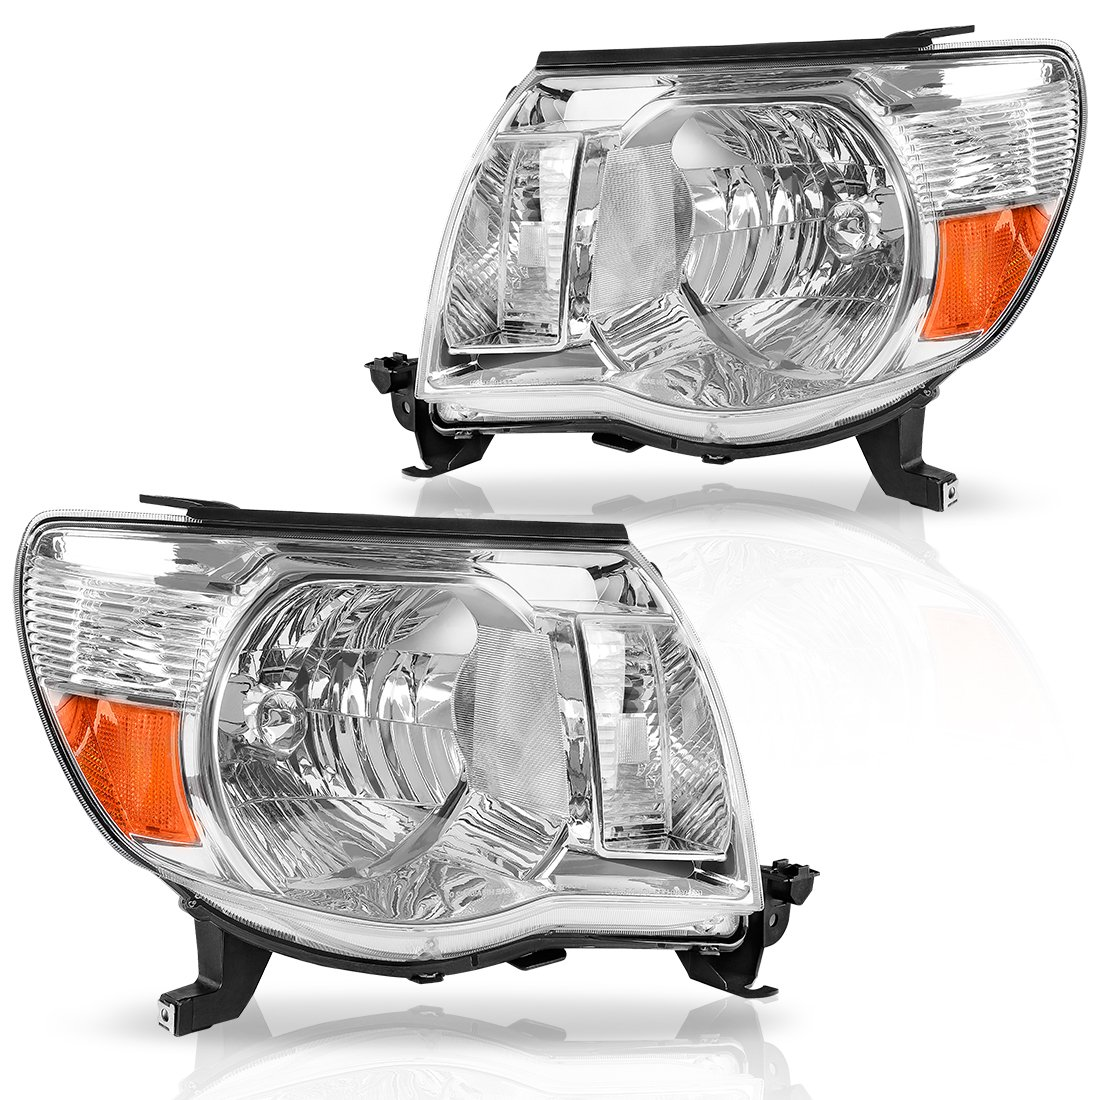 For 2005-2011 Toyota Tacoma Pickup Truck Headlight Assembly OE Style Replacement Black Housing Amber Reflector